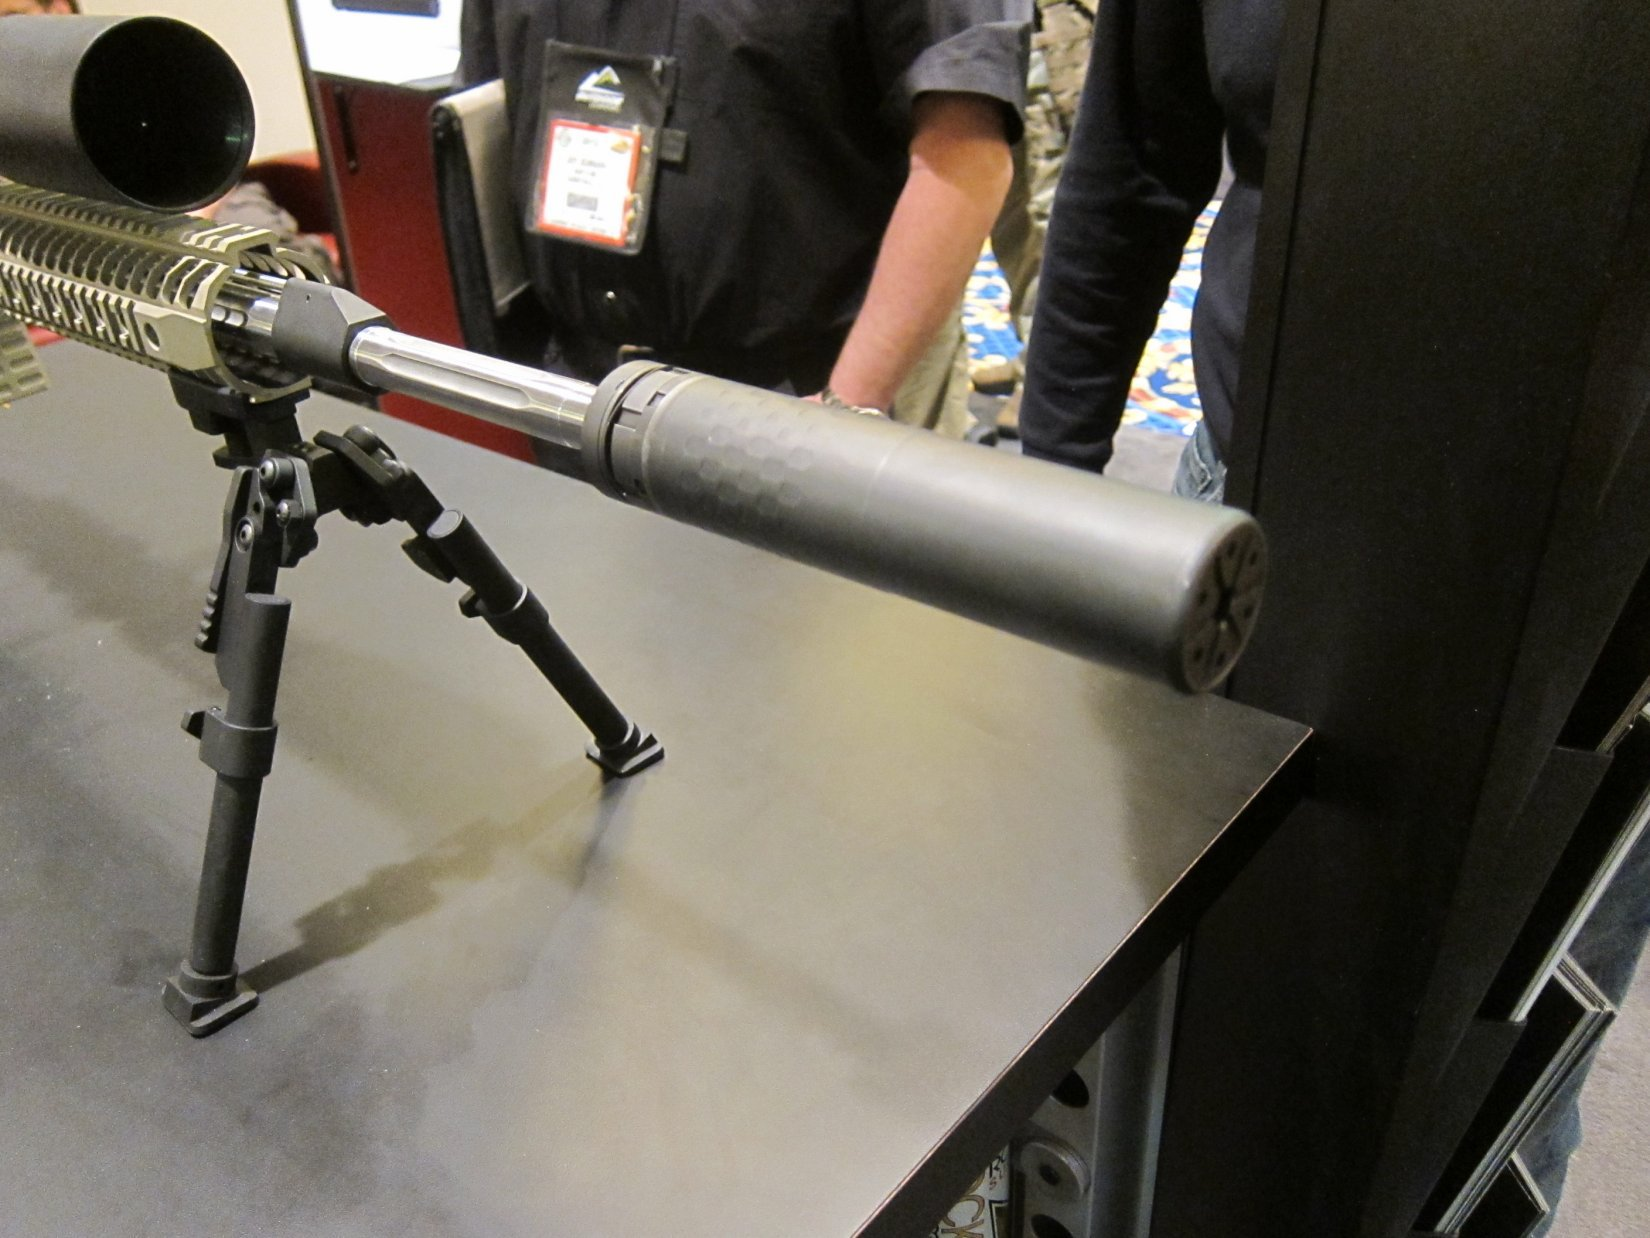 Silencerco 5.56 Saker 5.56mm NATO Silencer Sound Suppressor at SHOT Show 2012 DefenseReview.com DR 9 Silencerco Saker 5.56 Modular/Universal 5.56mm Rifle Silencer/Sound Suppressor with Trifecta Fast Attach Mount and Trifecta RS Flash Hider/Suppressor at SHOT Show 2012: Most Innovative and Modular 5.56mm Muzzle Can Ever? (Video!)